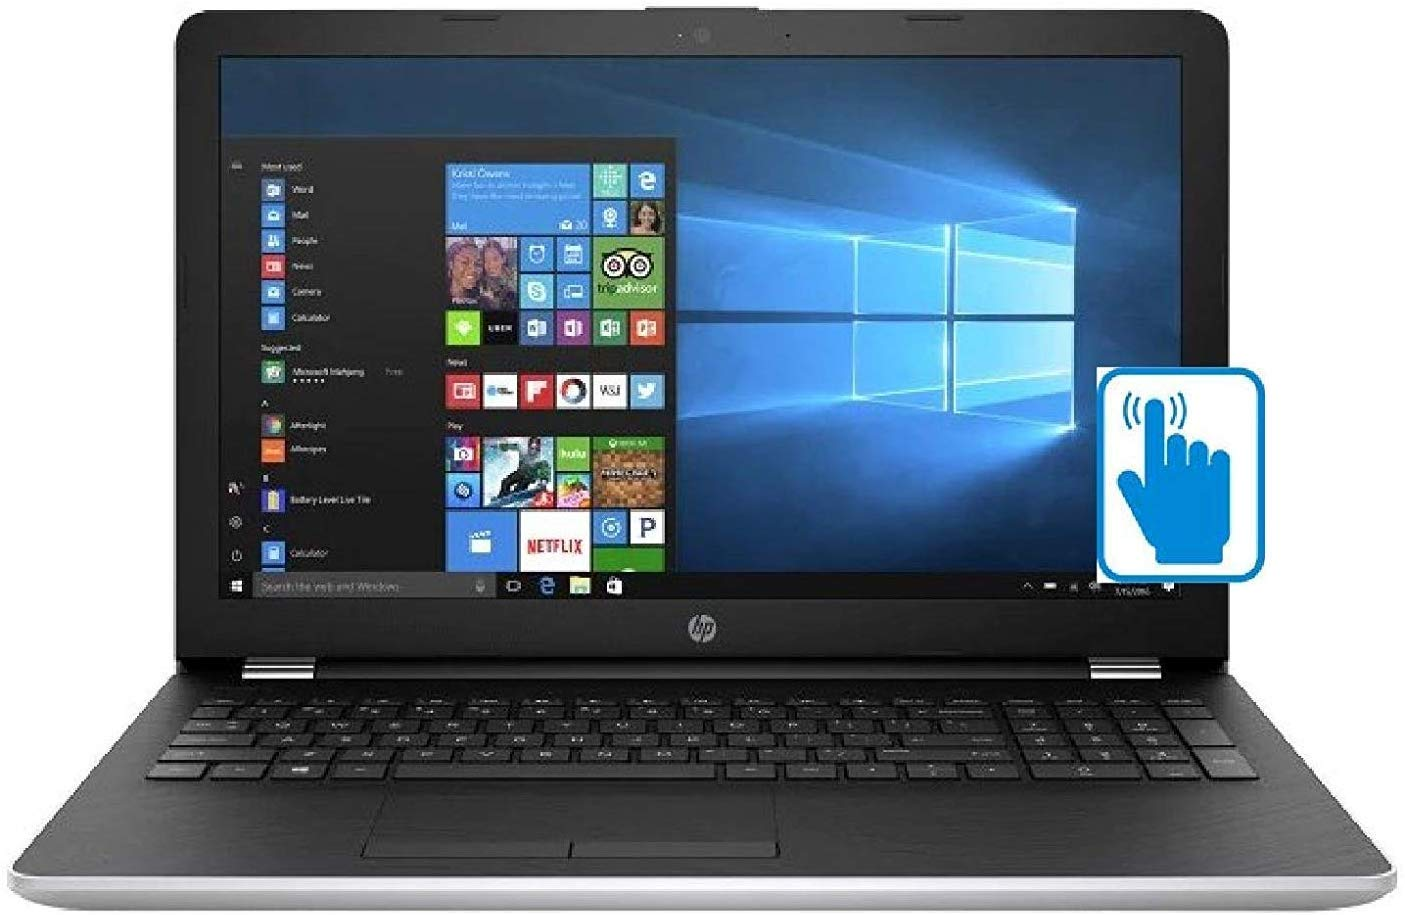 Newest HP 15.6 inch HD Touchscreen Flagship Premium Laptop PC, Intel Core i5-7200U Dual-Core, 8GB RAM, 2TB HDD, Bluetooth, WiFi, Stereo Speakers, Windows 10 Home